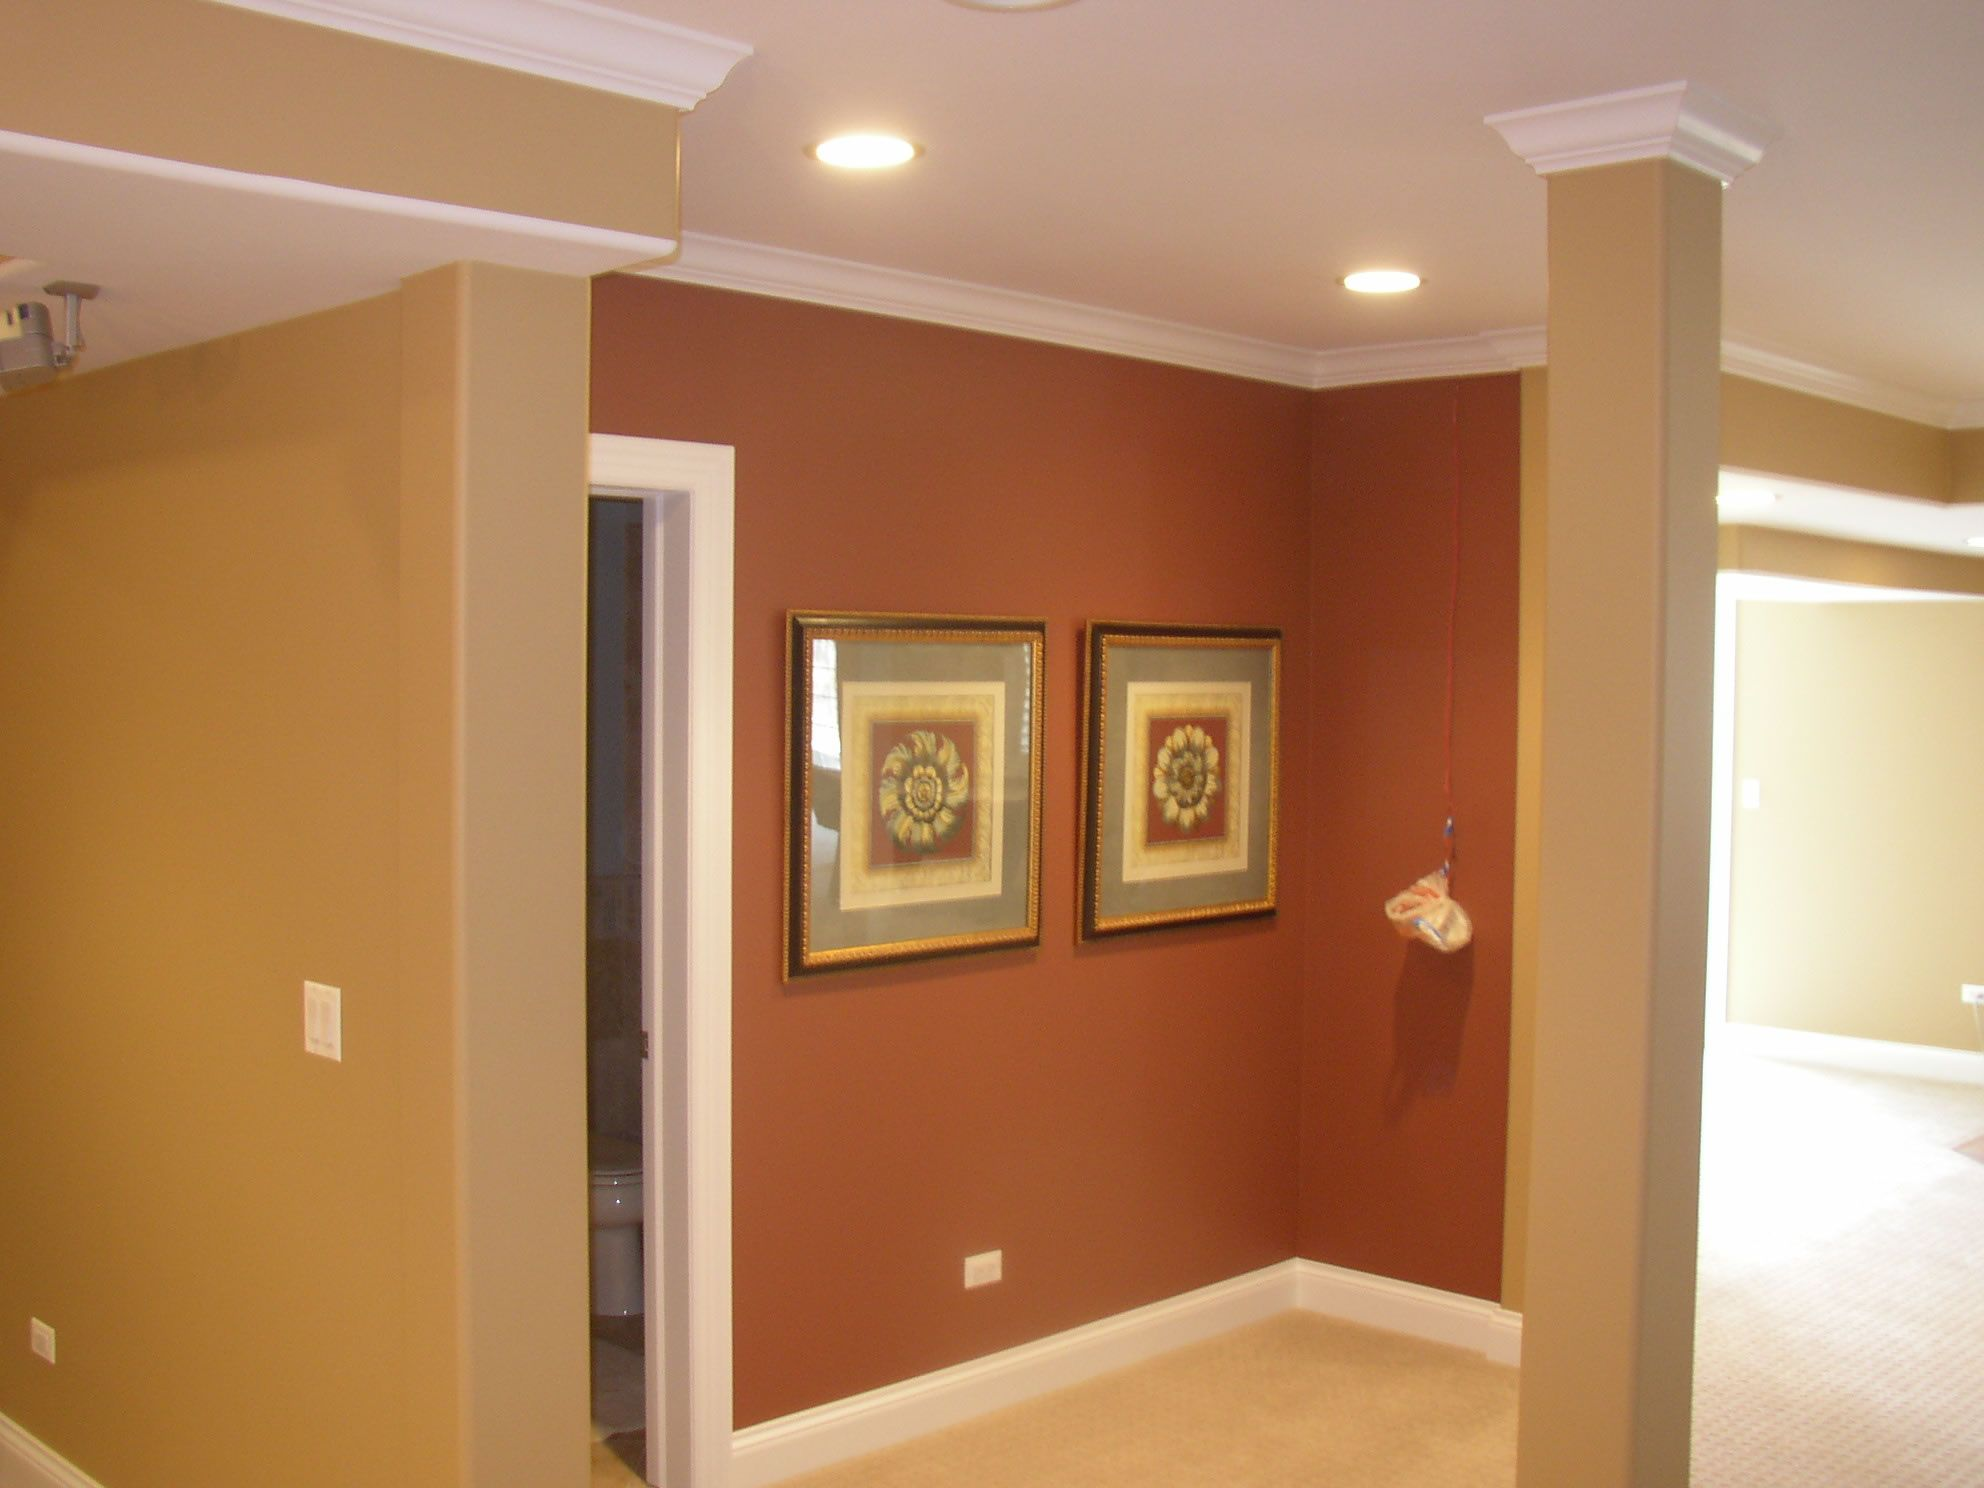 paint interiorinterior paint colors   To Request A FREE Estimate For Your